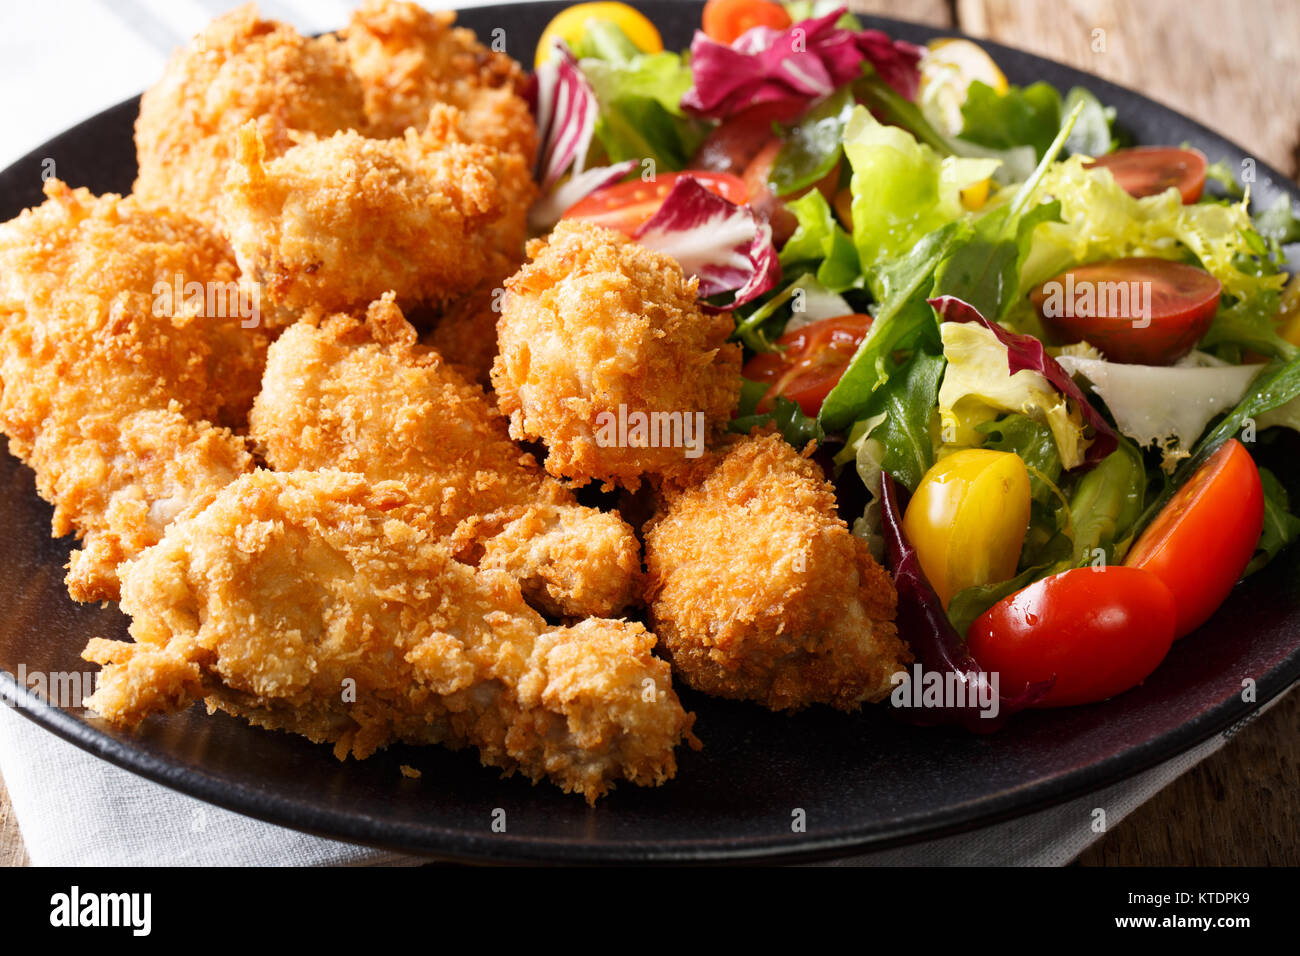 deep-fried chicken wings in breadcrumbs and fresh vegetable close-up on a plate. horizontal - Stock Image